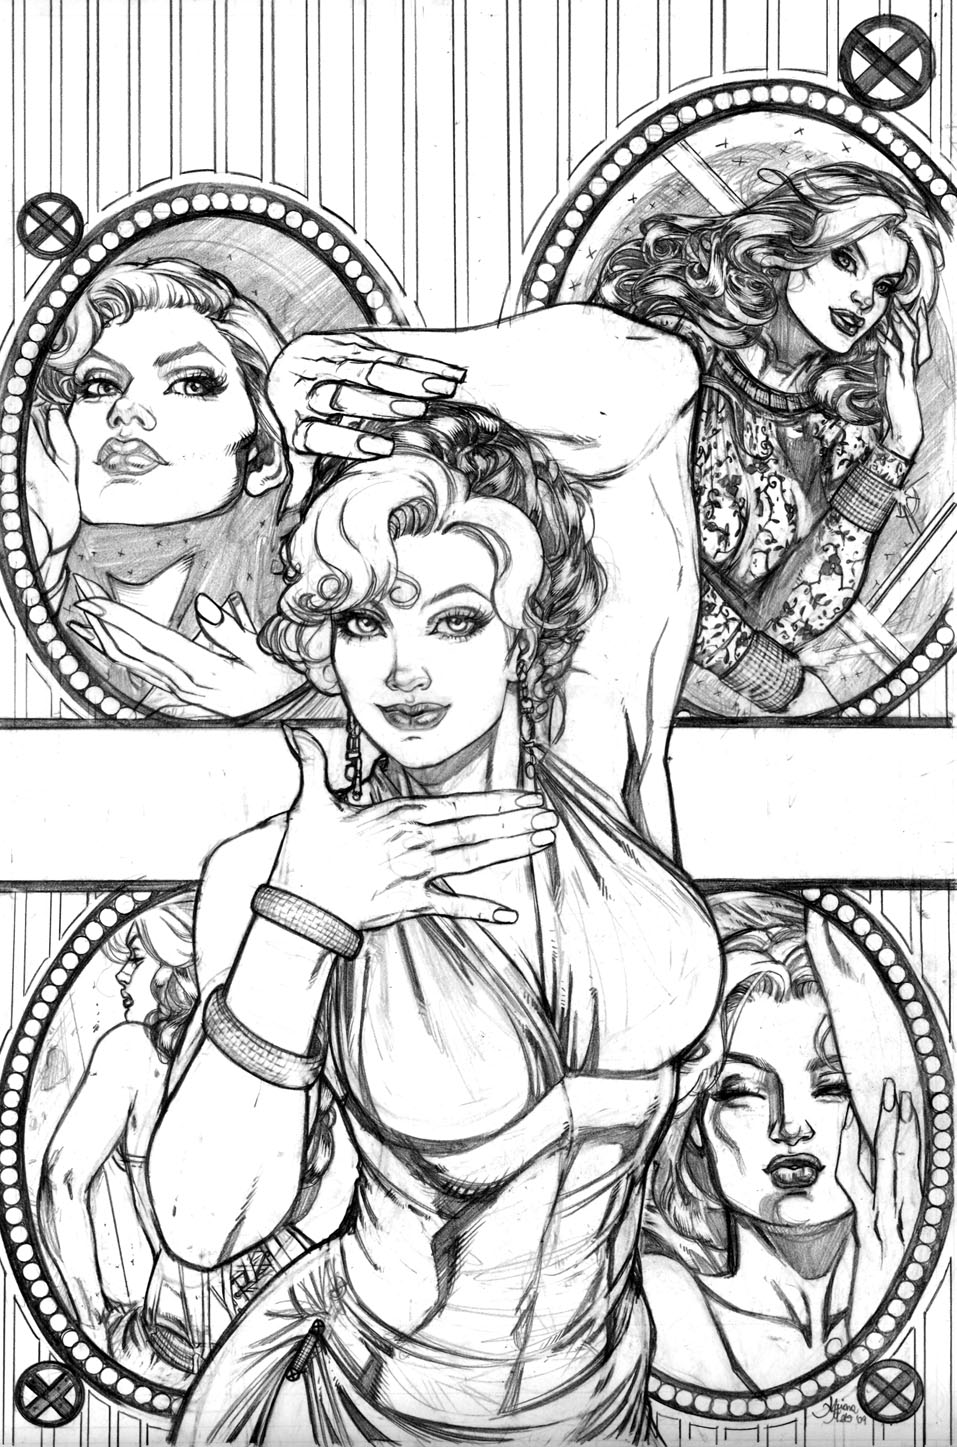 Adriana Melo Adriana Melo Takes Our Breath Away The Sketchcard Saloon